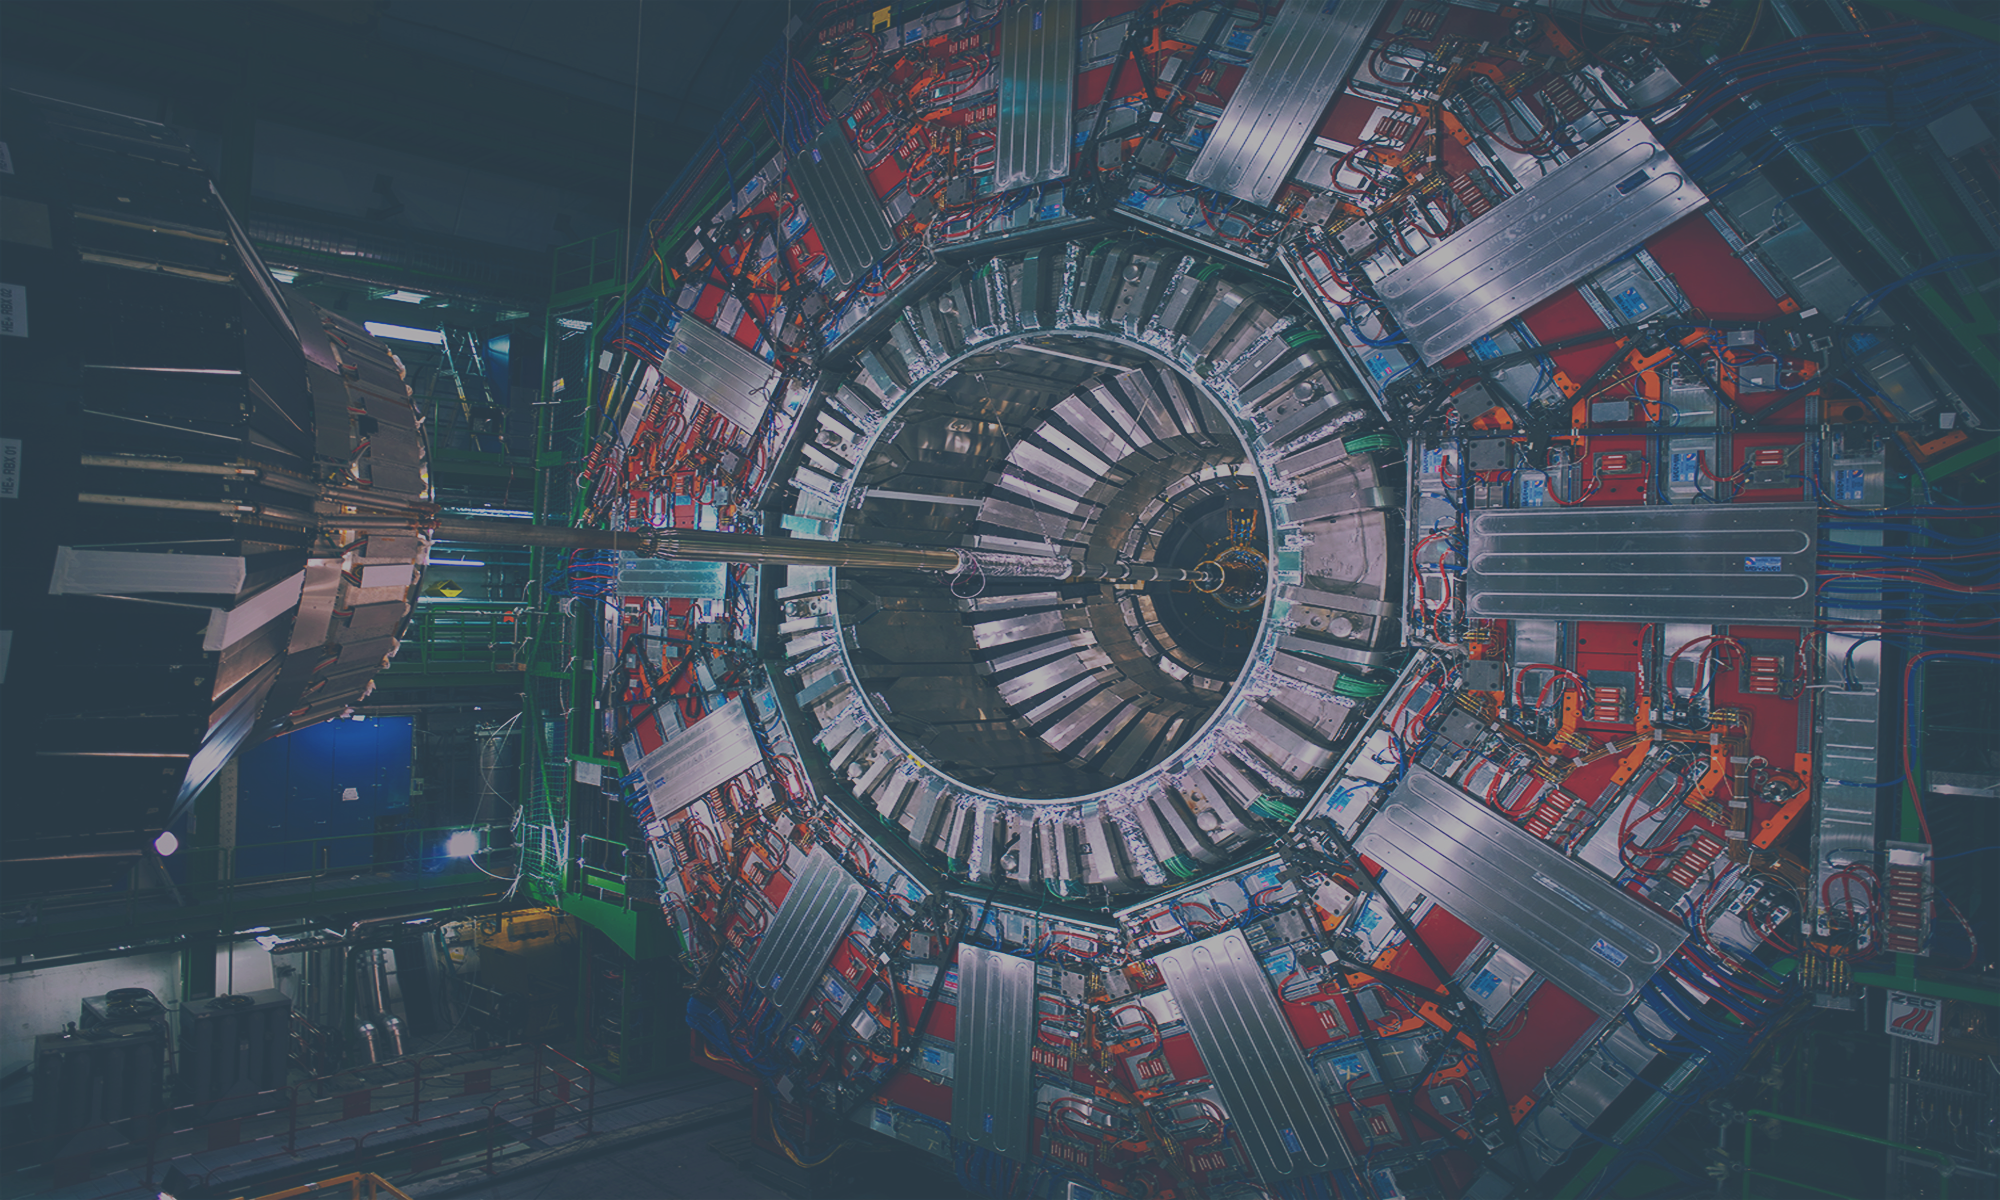 https://www.cernbic.stfc.ac.uk/Gallery/CERN%20CMS%20Blue%20effect.png